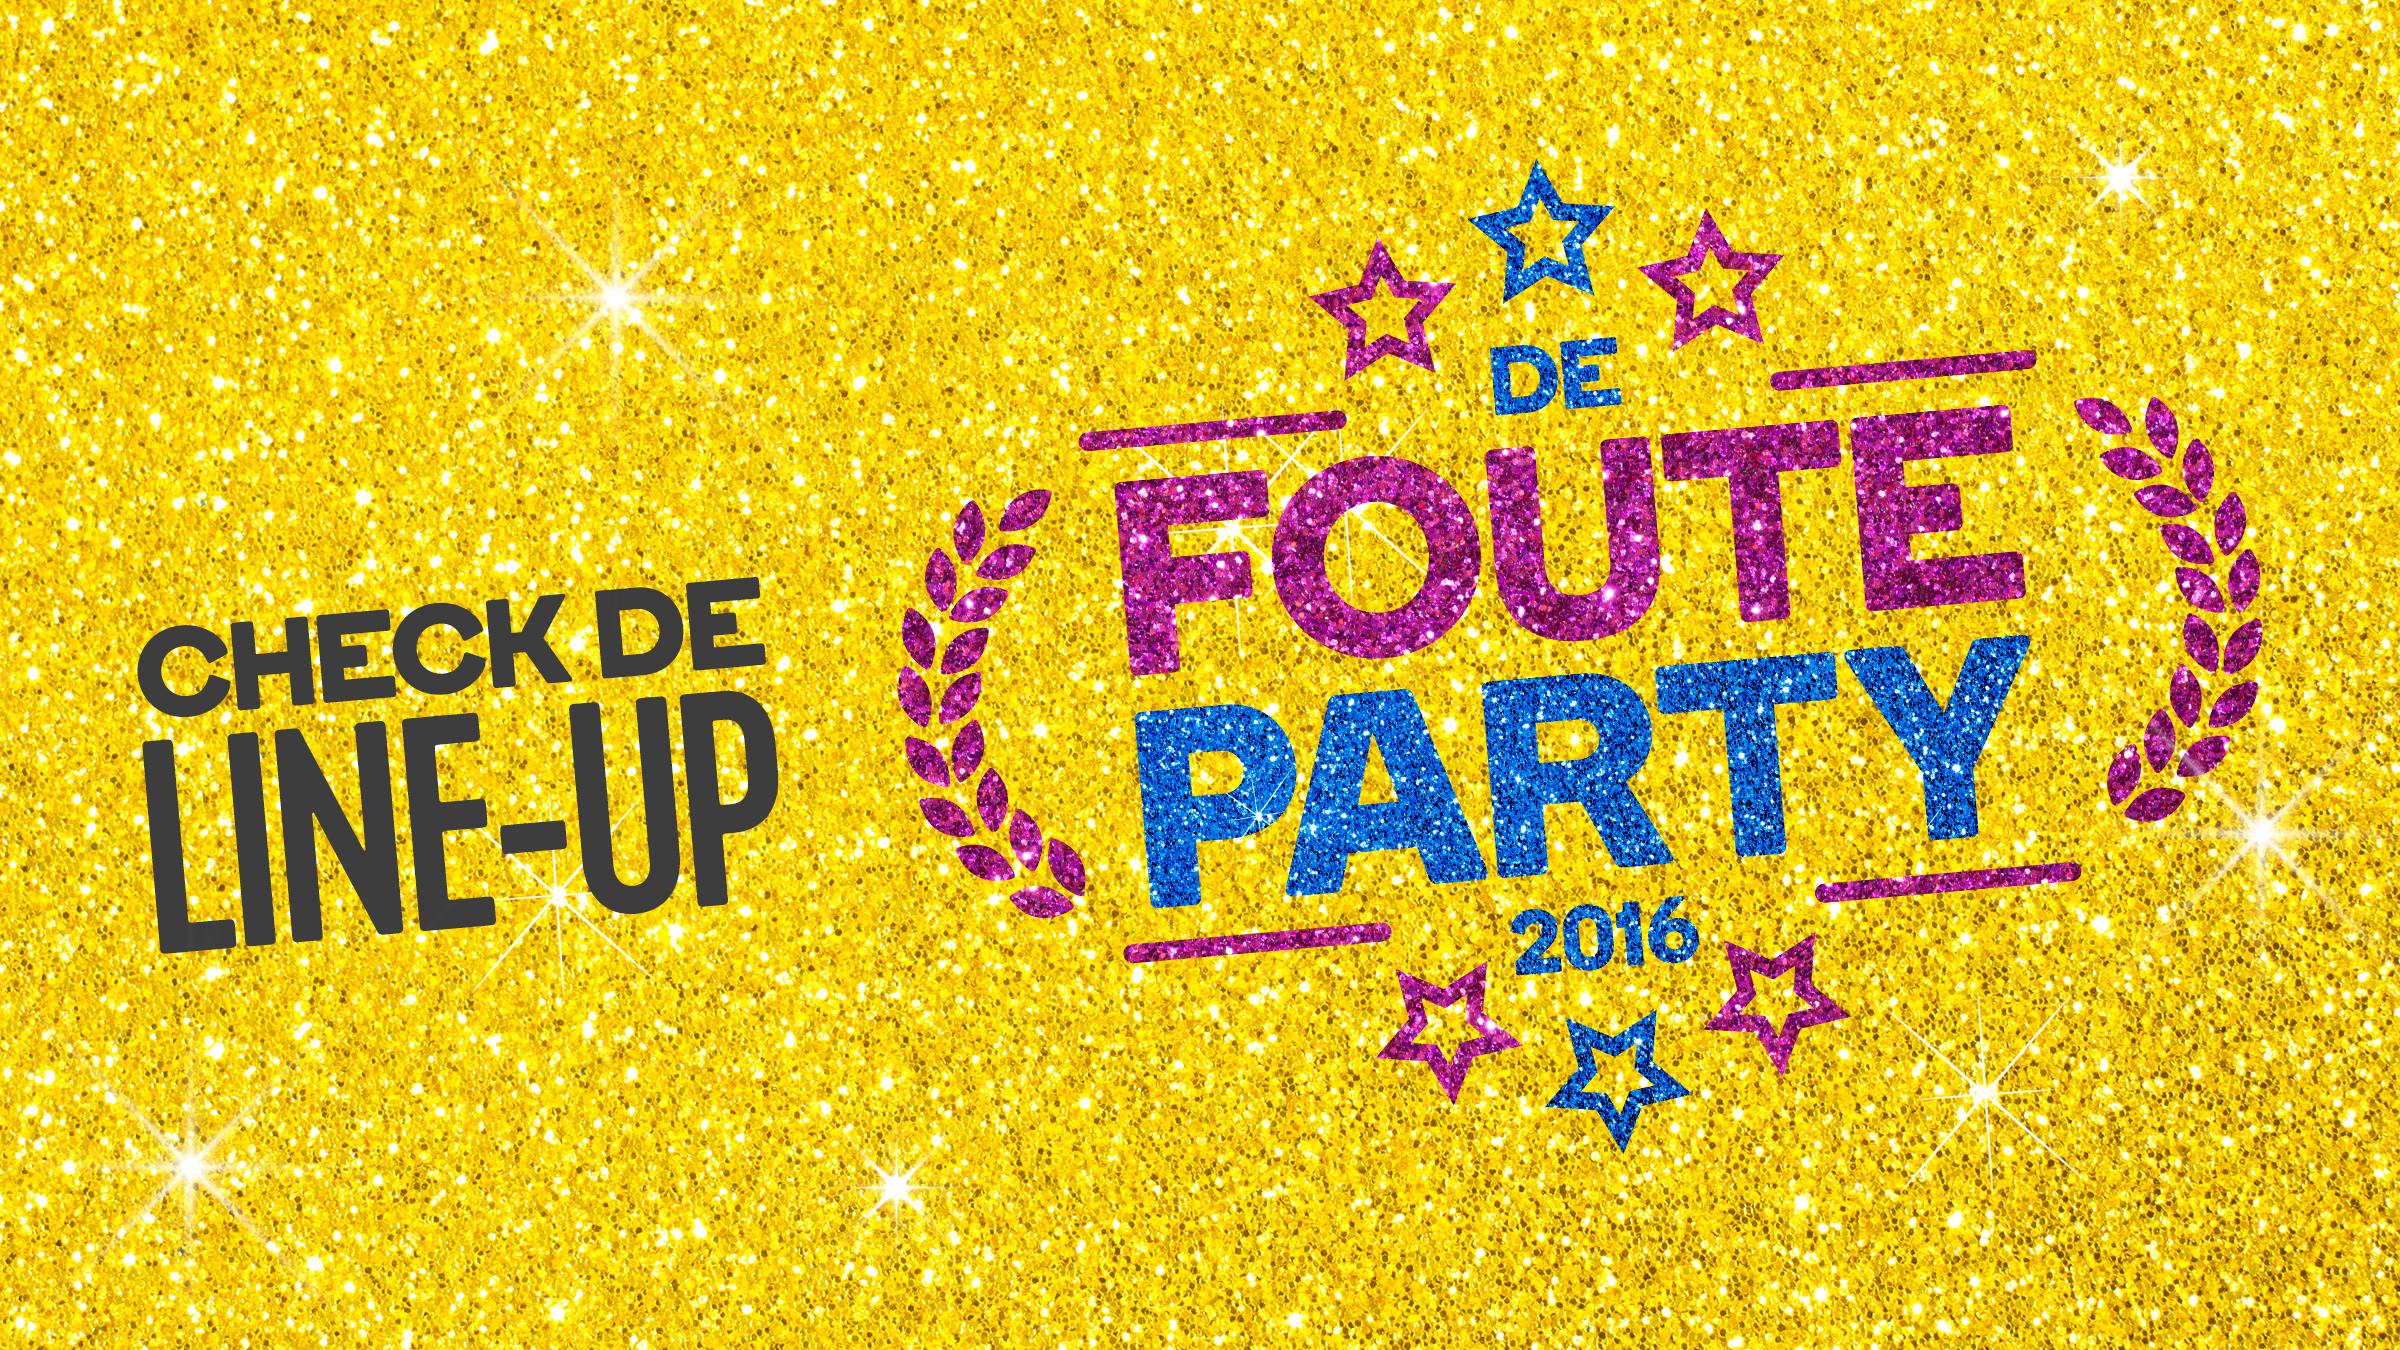 Qmusic teaser fouteparty line up